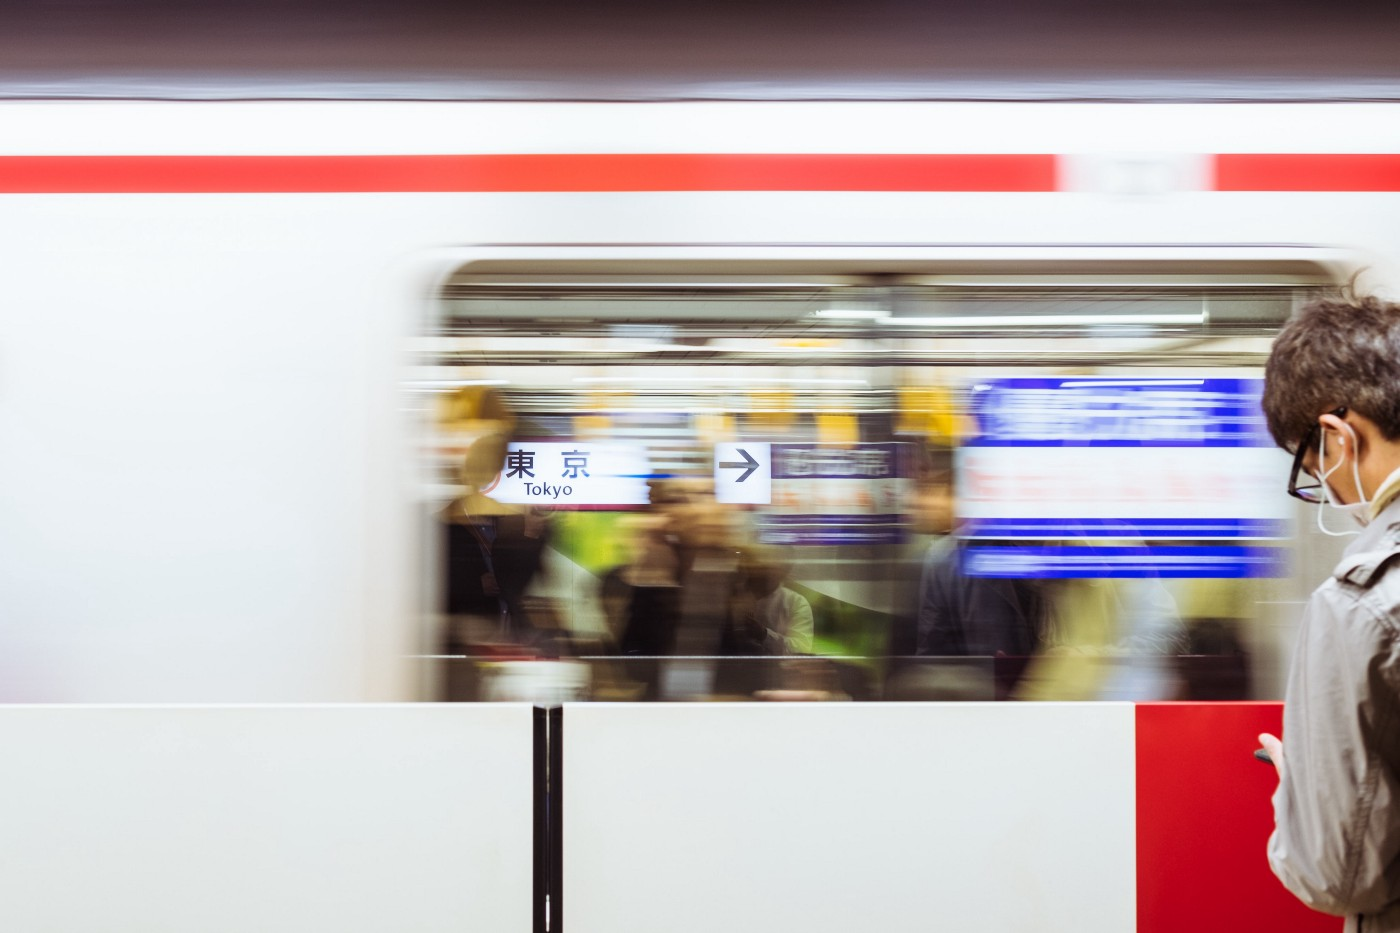 A man wearing a face mask looks at his phone while a train zooms by in the Tokyo subway.